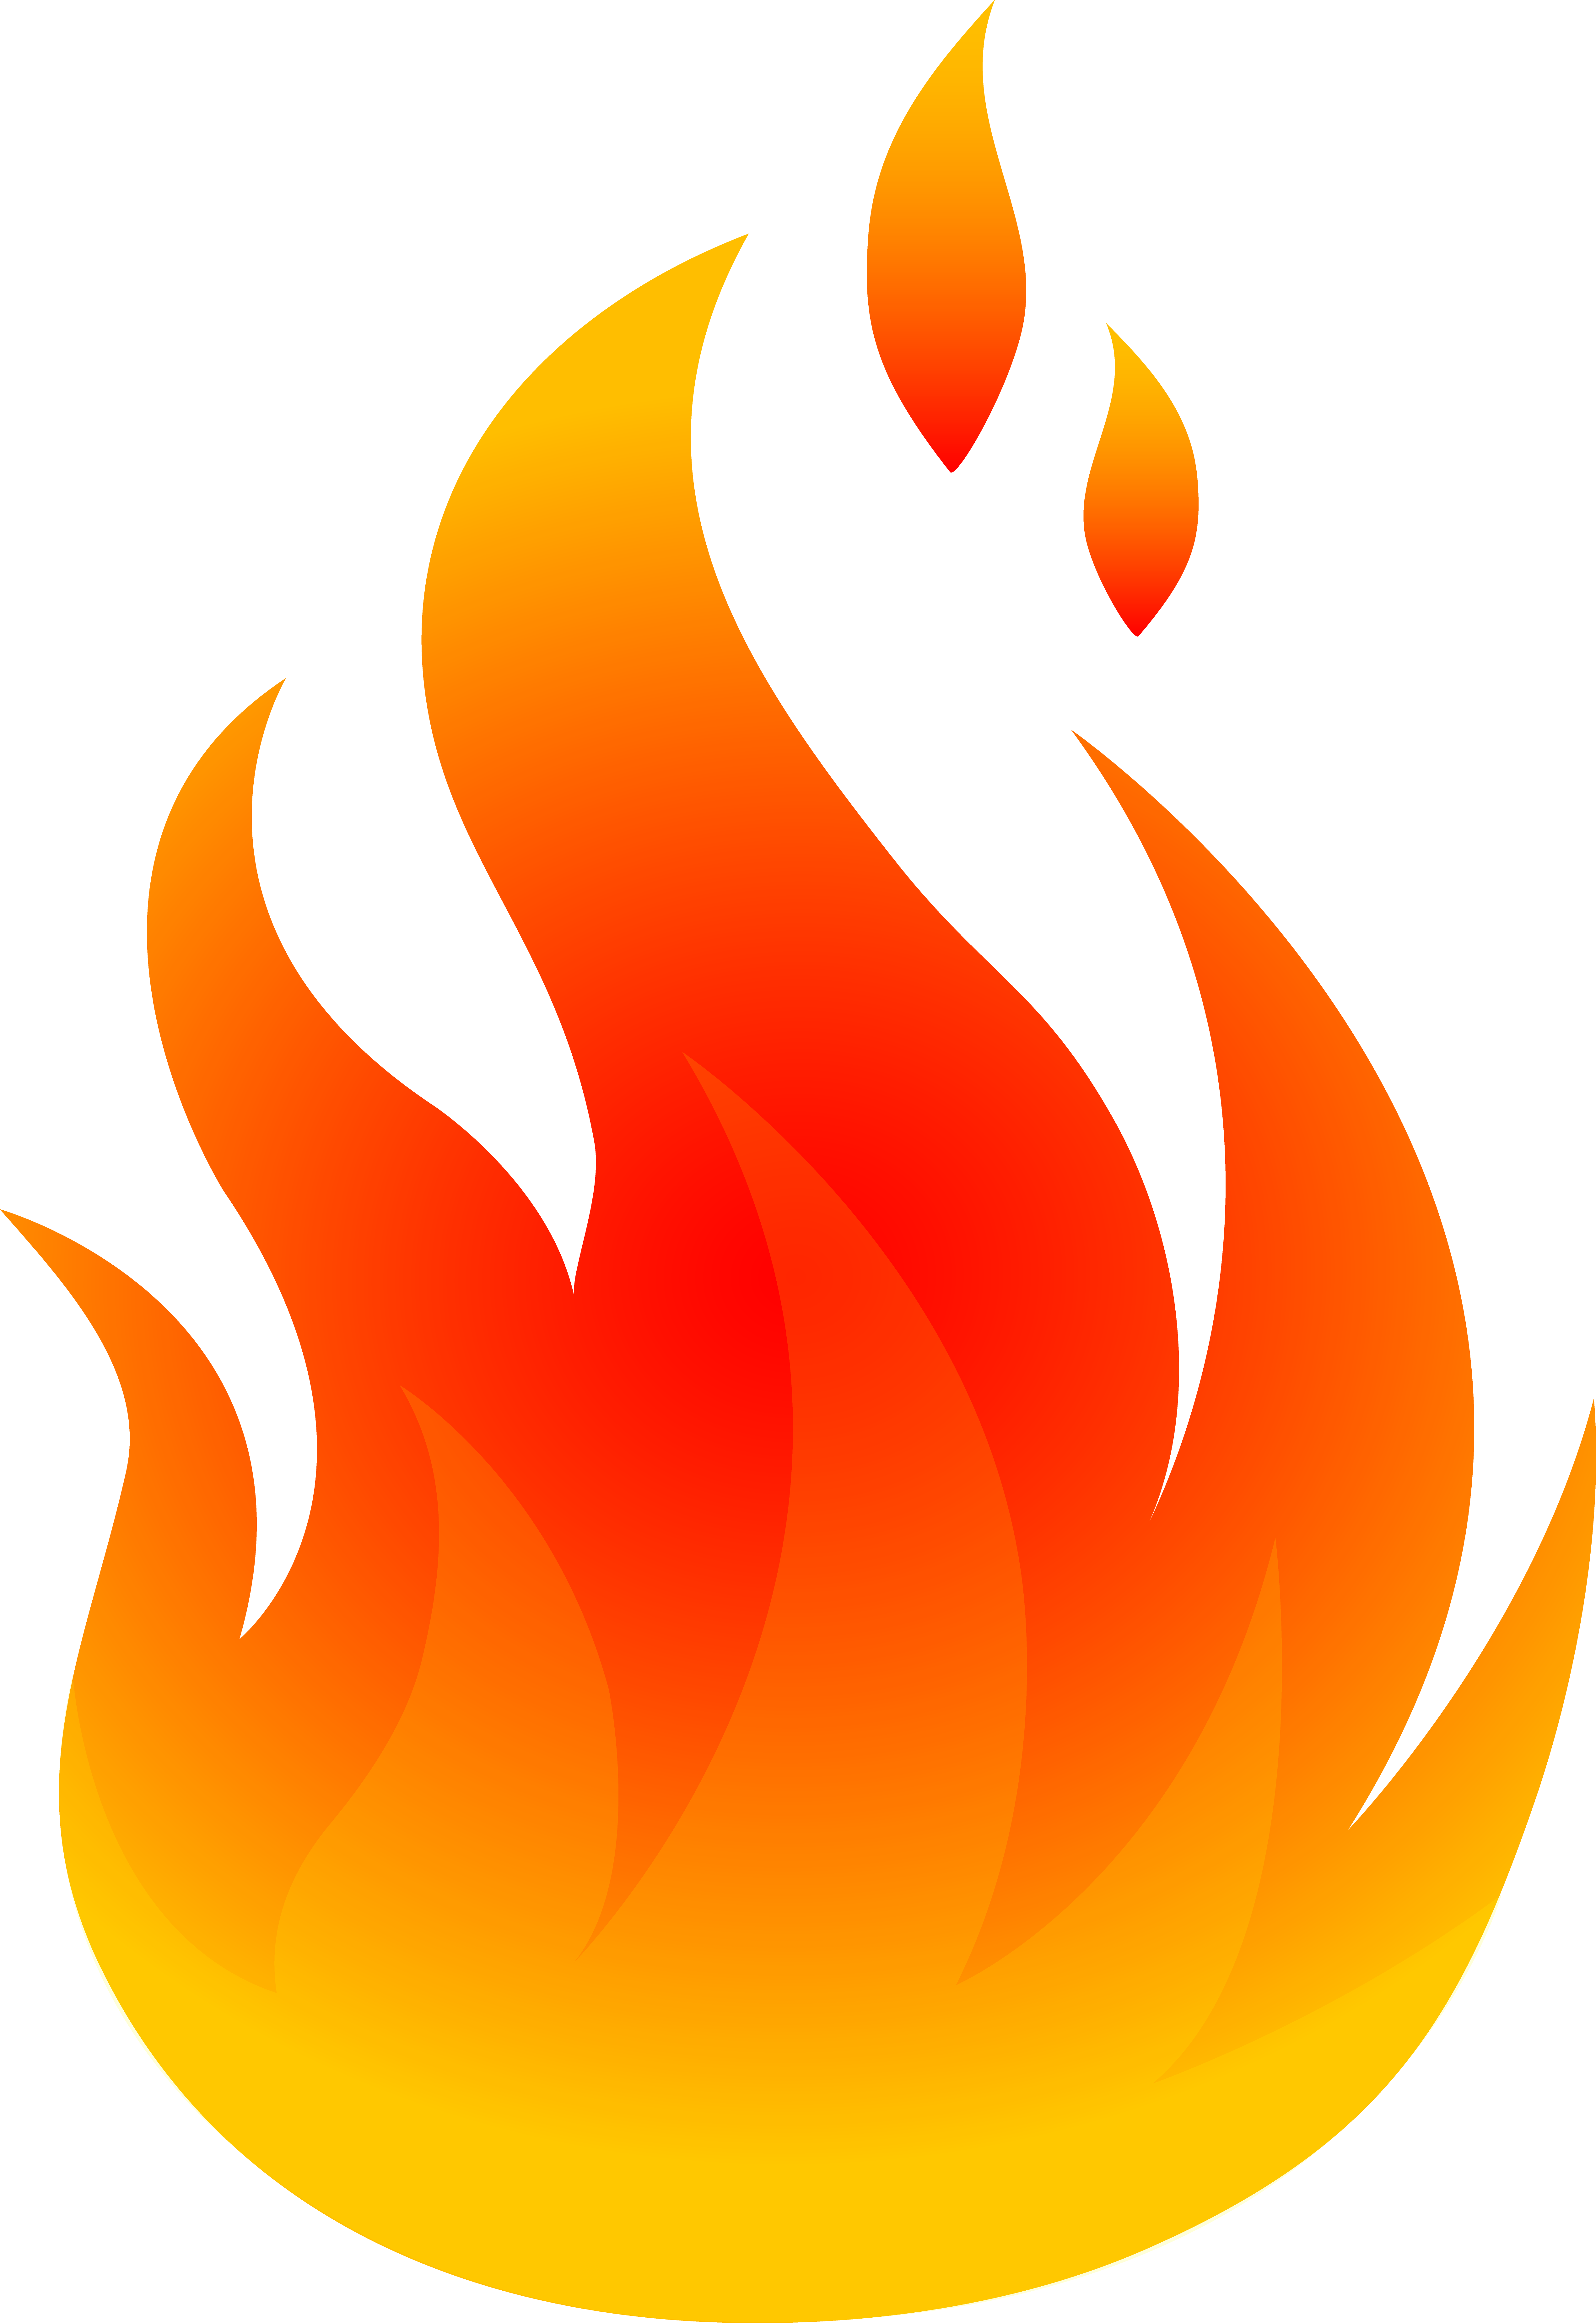 5084x7399 Fire Flame Outline Drawings Flame 7 Clip Art Vector Clip Art